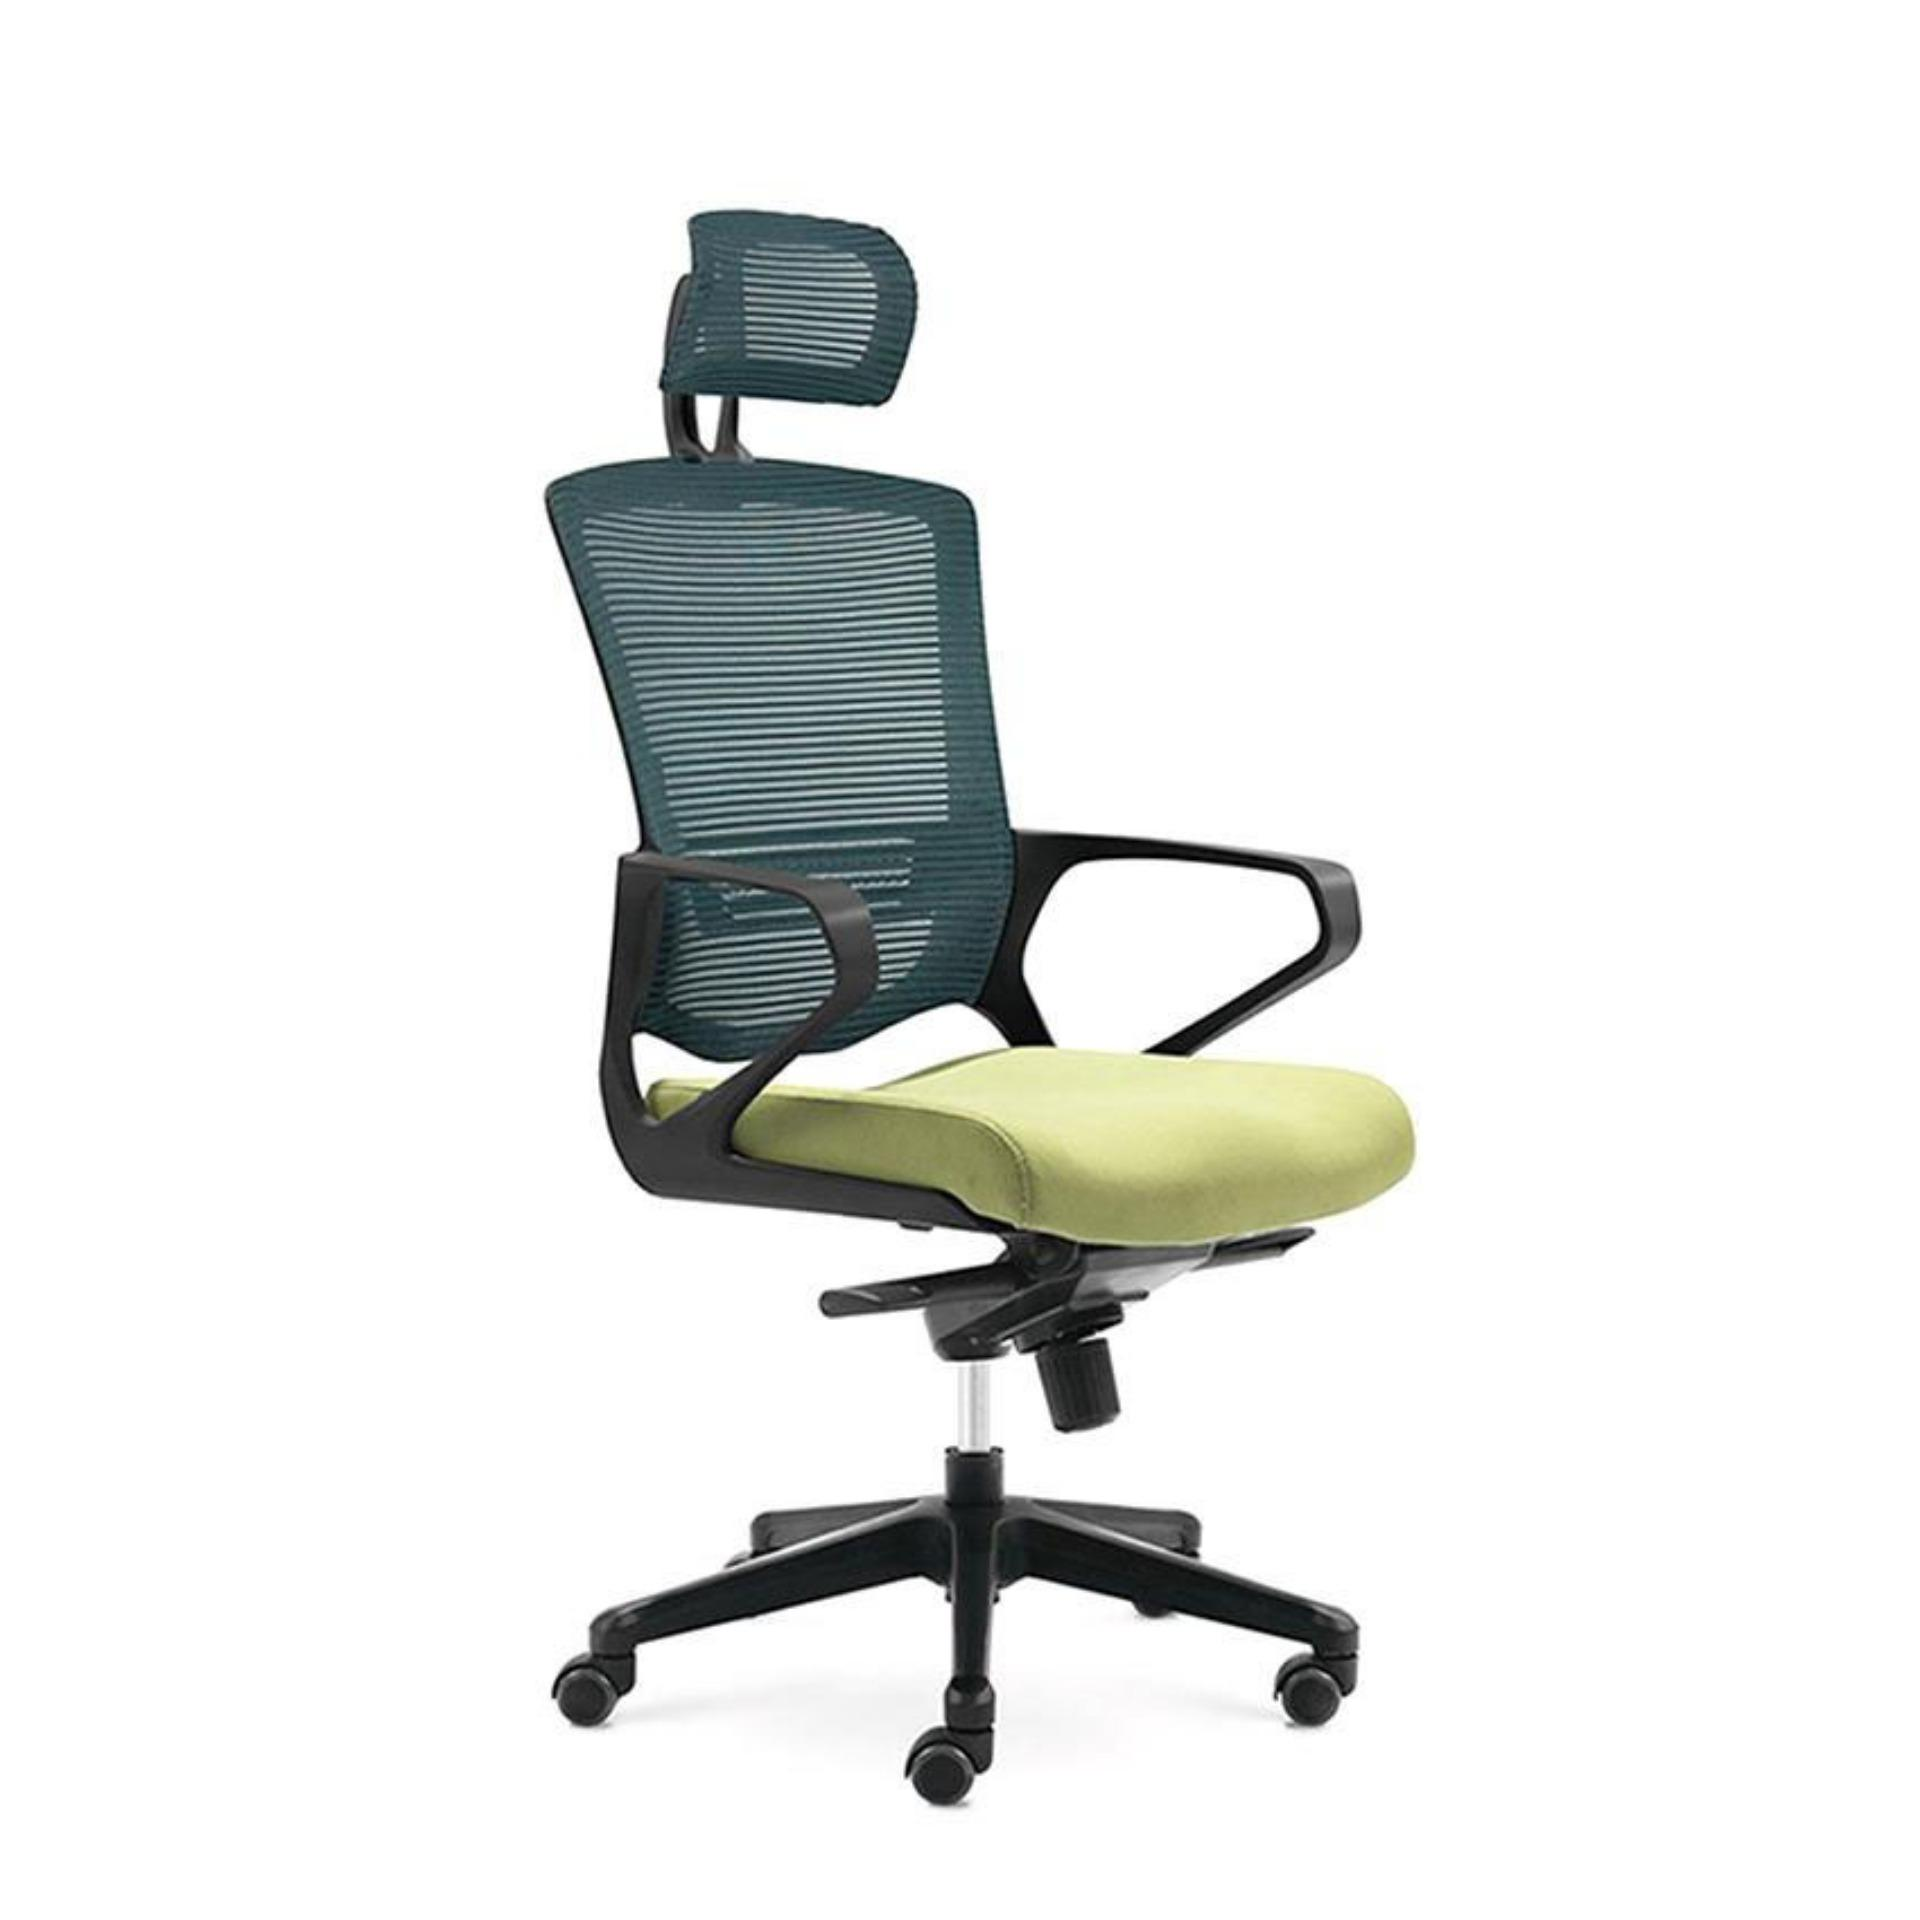 revolving chair in bangladesh dental position for scaling afr 007 cm b121as 1 black and green buy sell online best prices daraz com bd